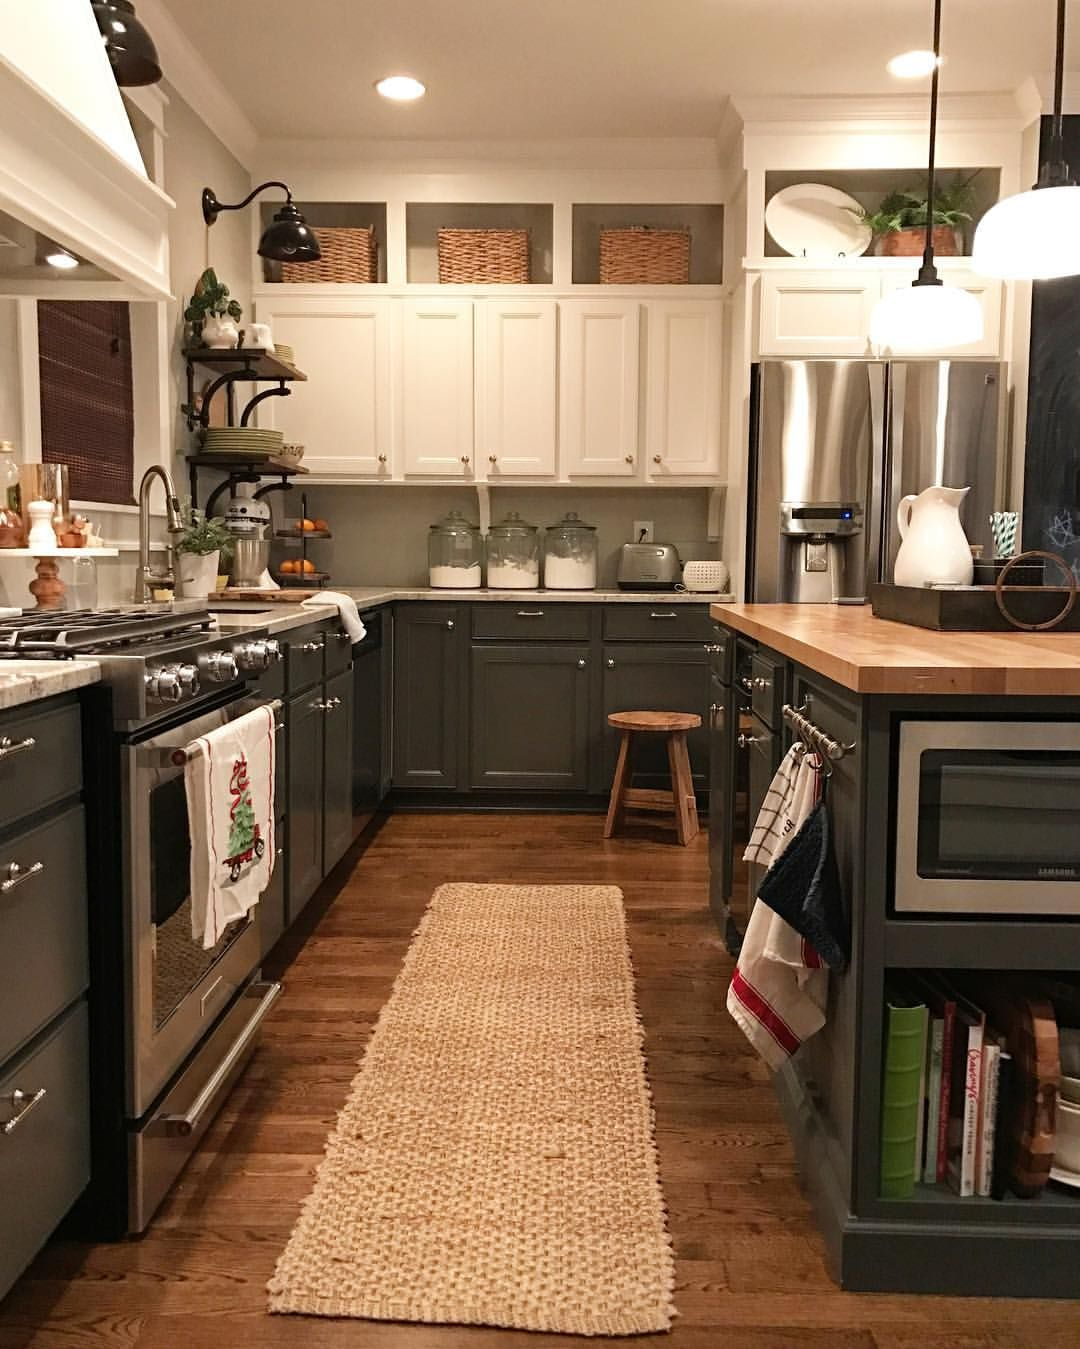 pin by janet dodd on 1036 tallahassee rd | two tone kitchen cabinets